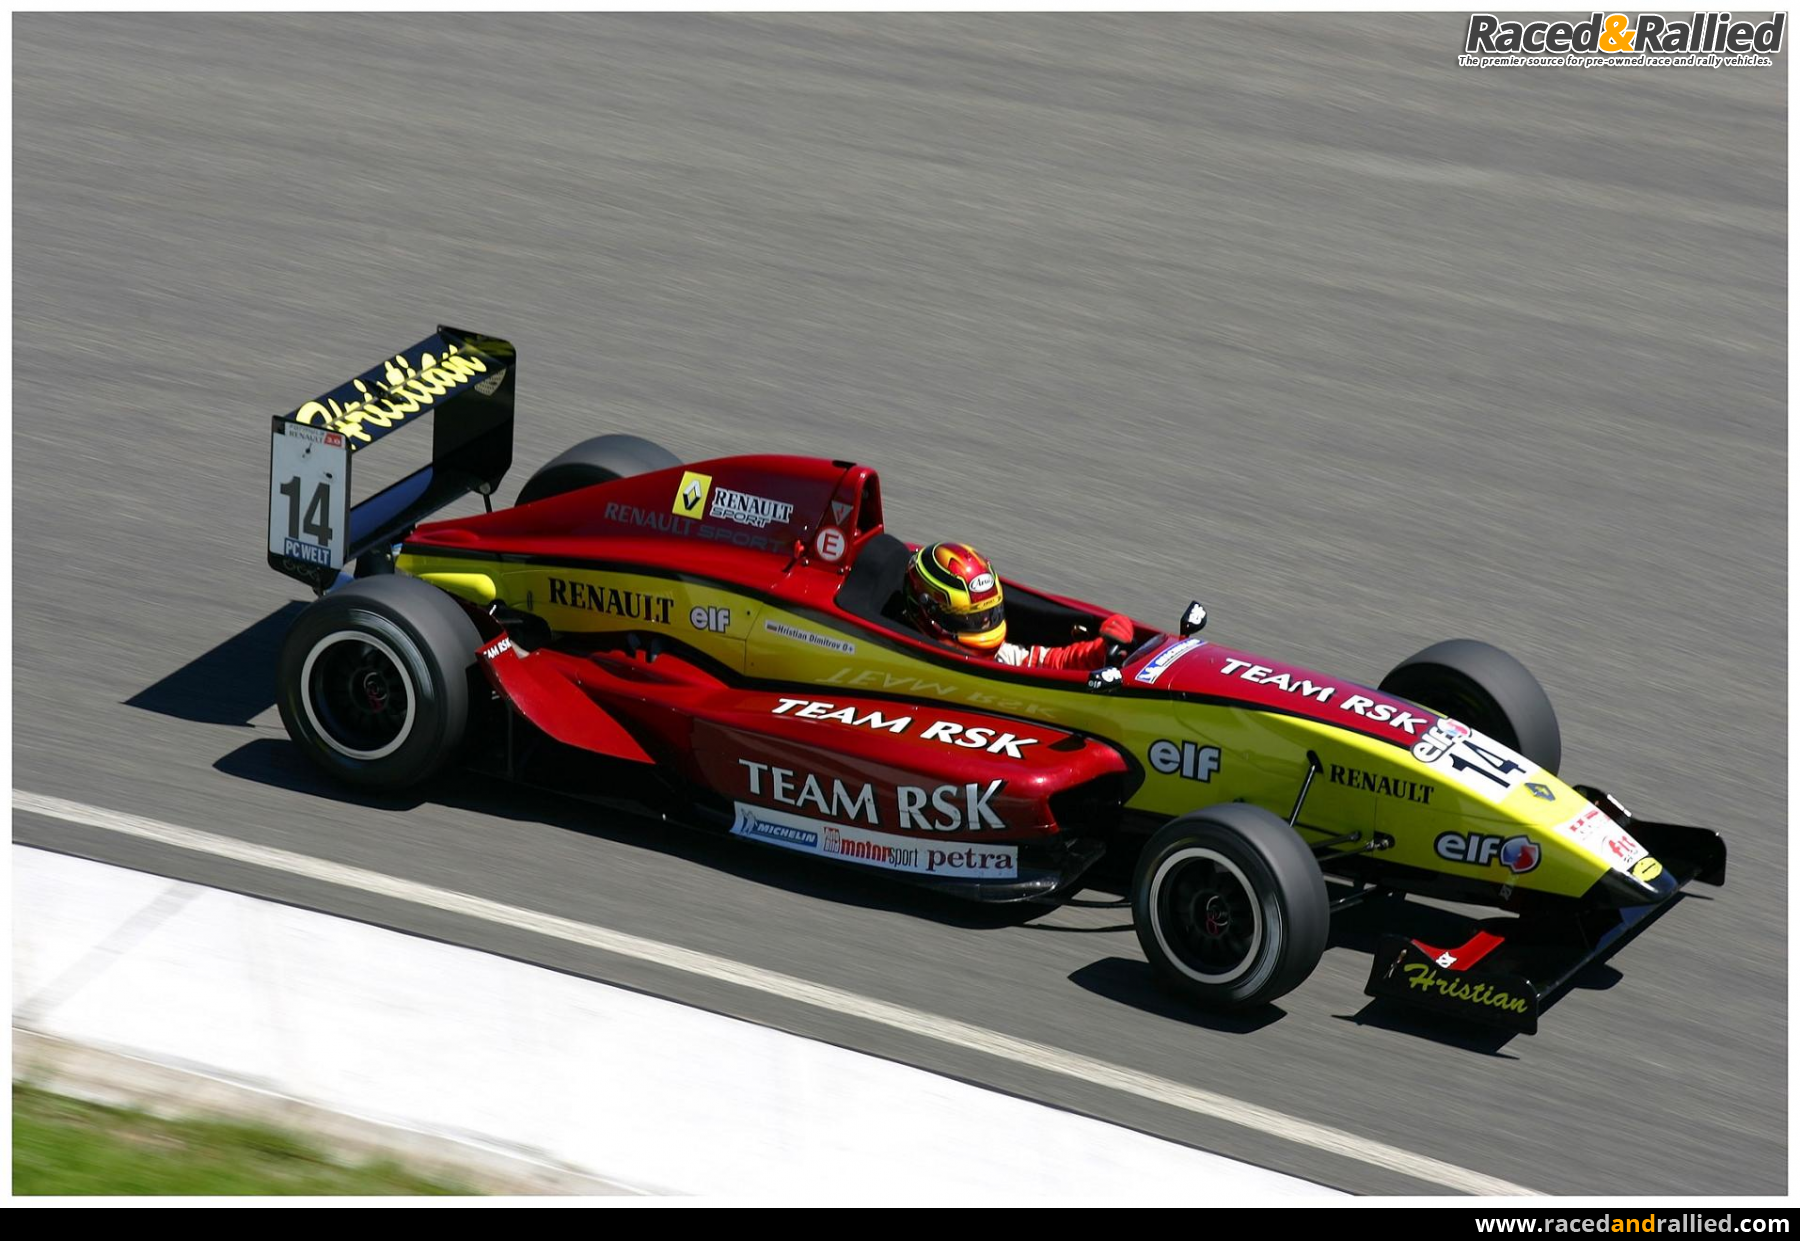 formula renault 2 0 for sale race cars for sale at raced rallied rh racedandrallied com Formula Renault 2.0 2008 Formula Renault 2.0 1996